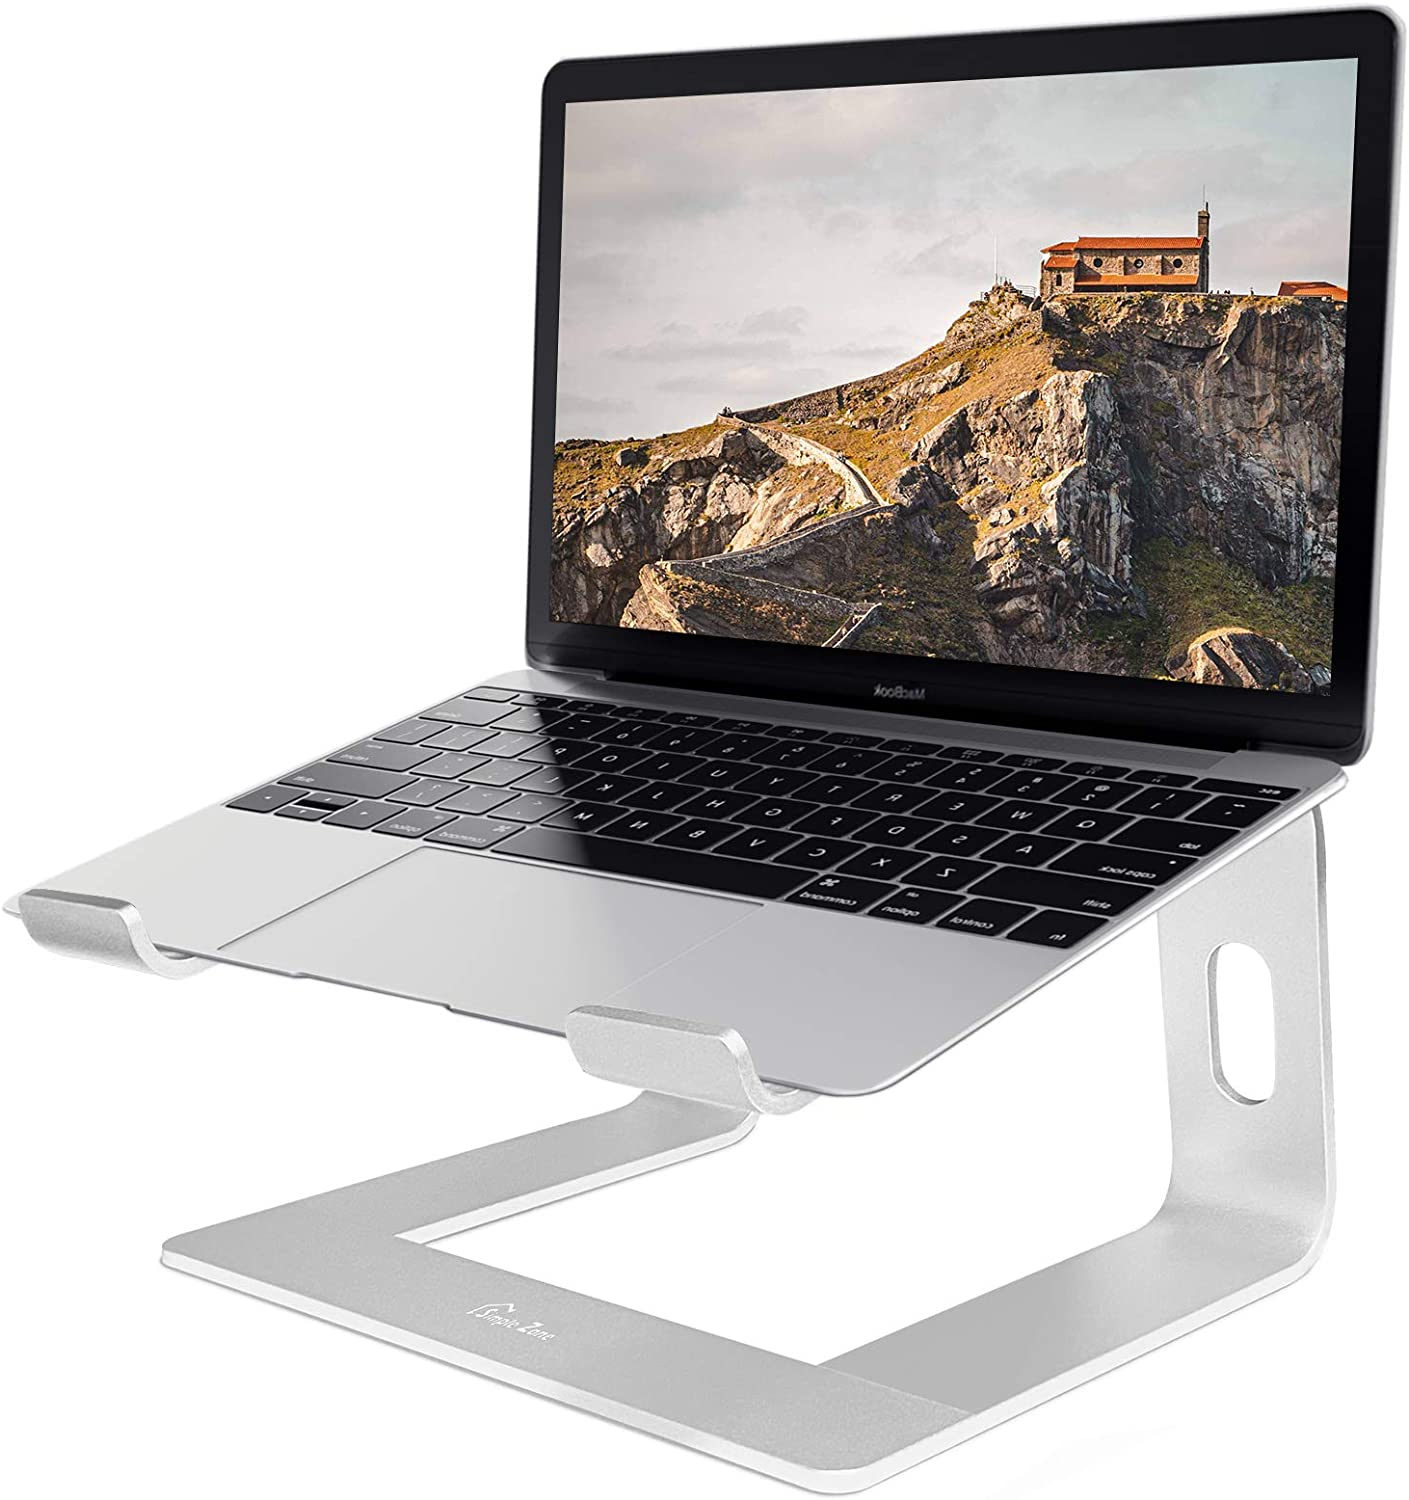 """Simple Zone Laptop Stand, Ergonomic Aluminum Computer Stand, Detachable Riser Holder Notebook Stand Compatible with MacBook Air Pro, Dell XPS, Lenovo More 10-15.6"""" Laptops – Silver"""